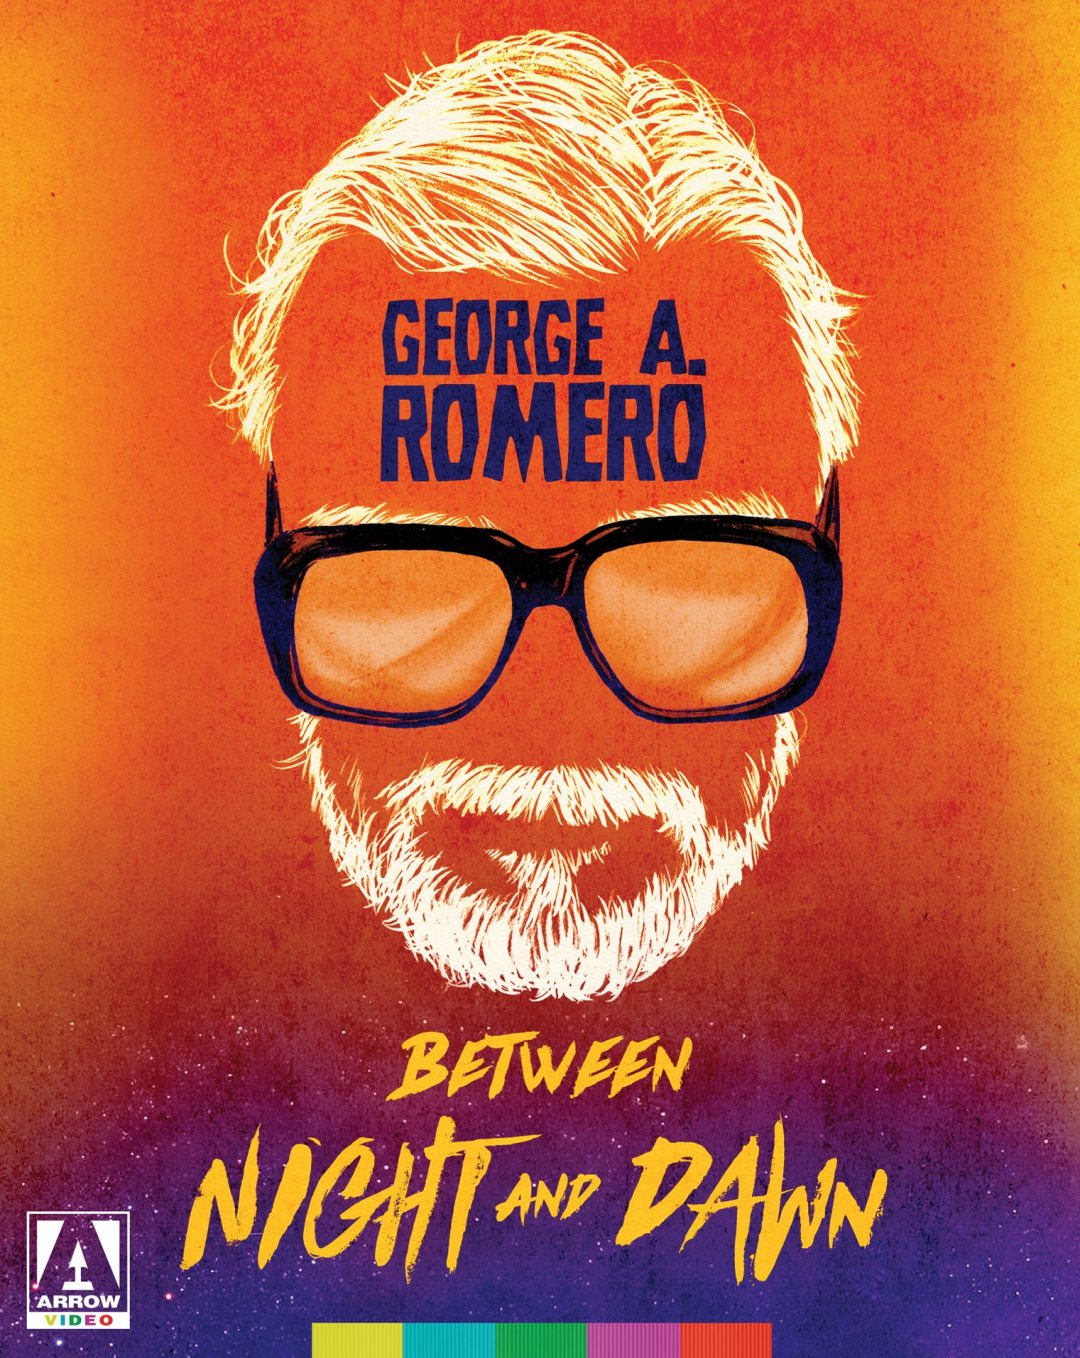 George A. Romero – Between Night and Dawn Coming 10/23